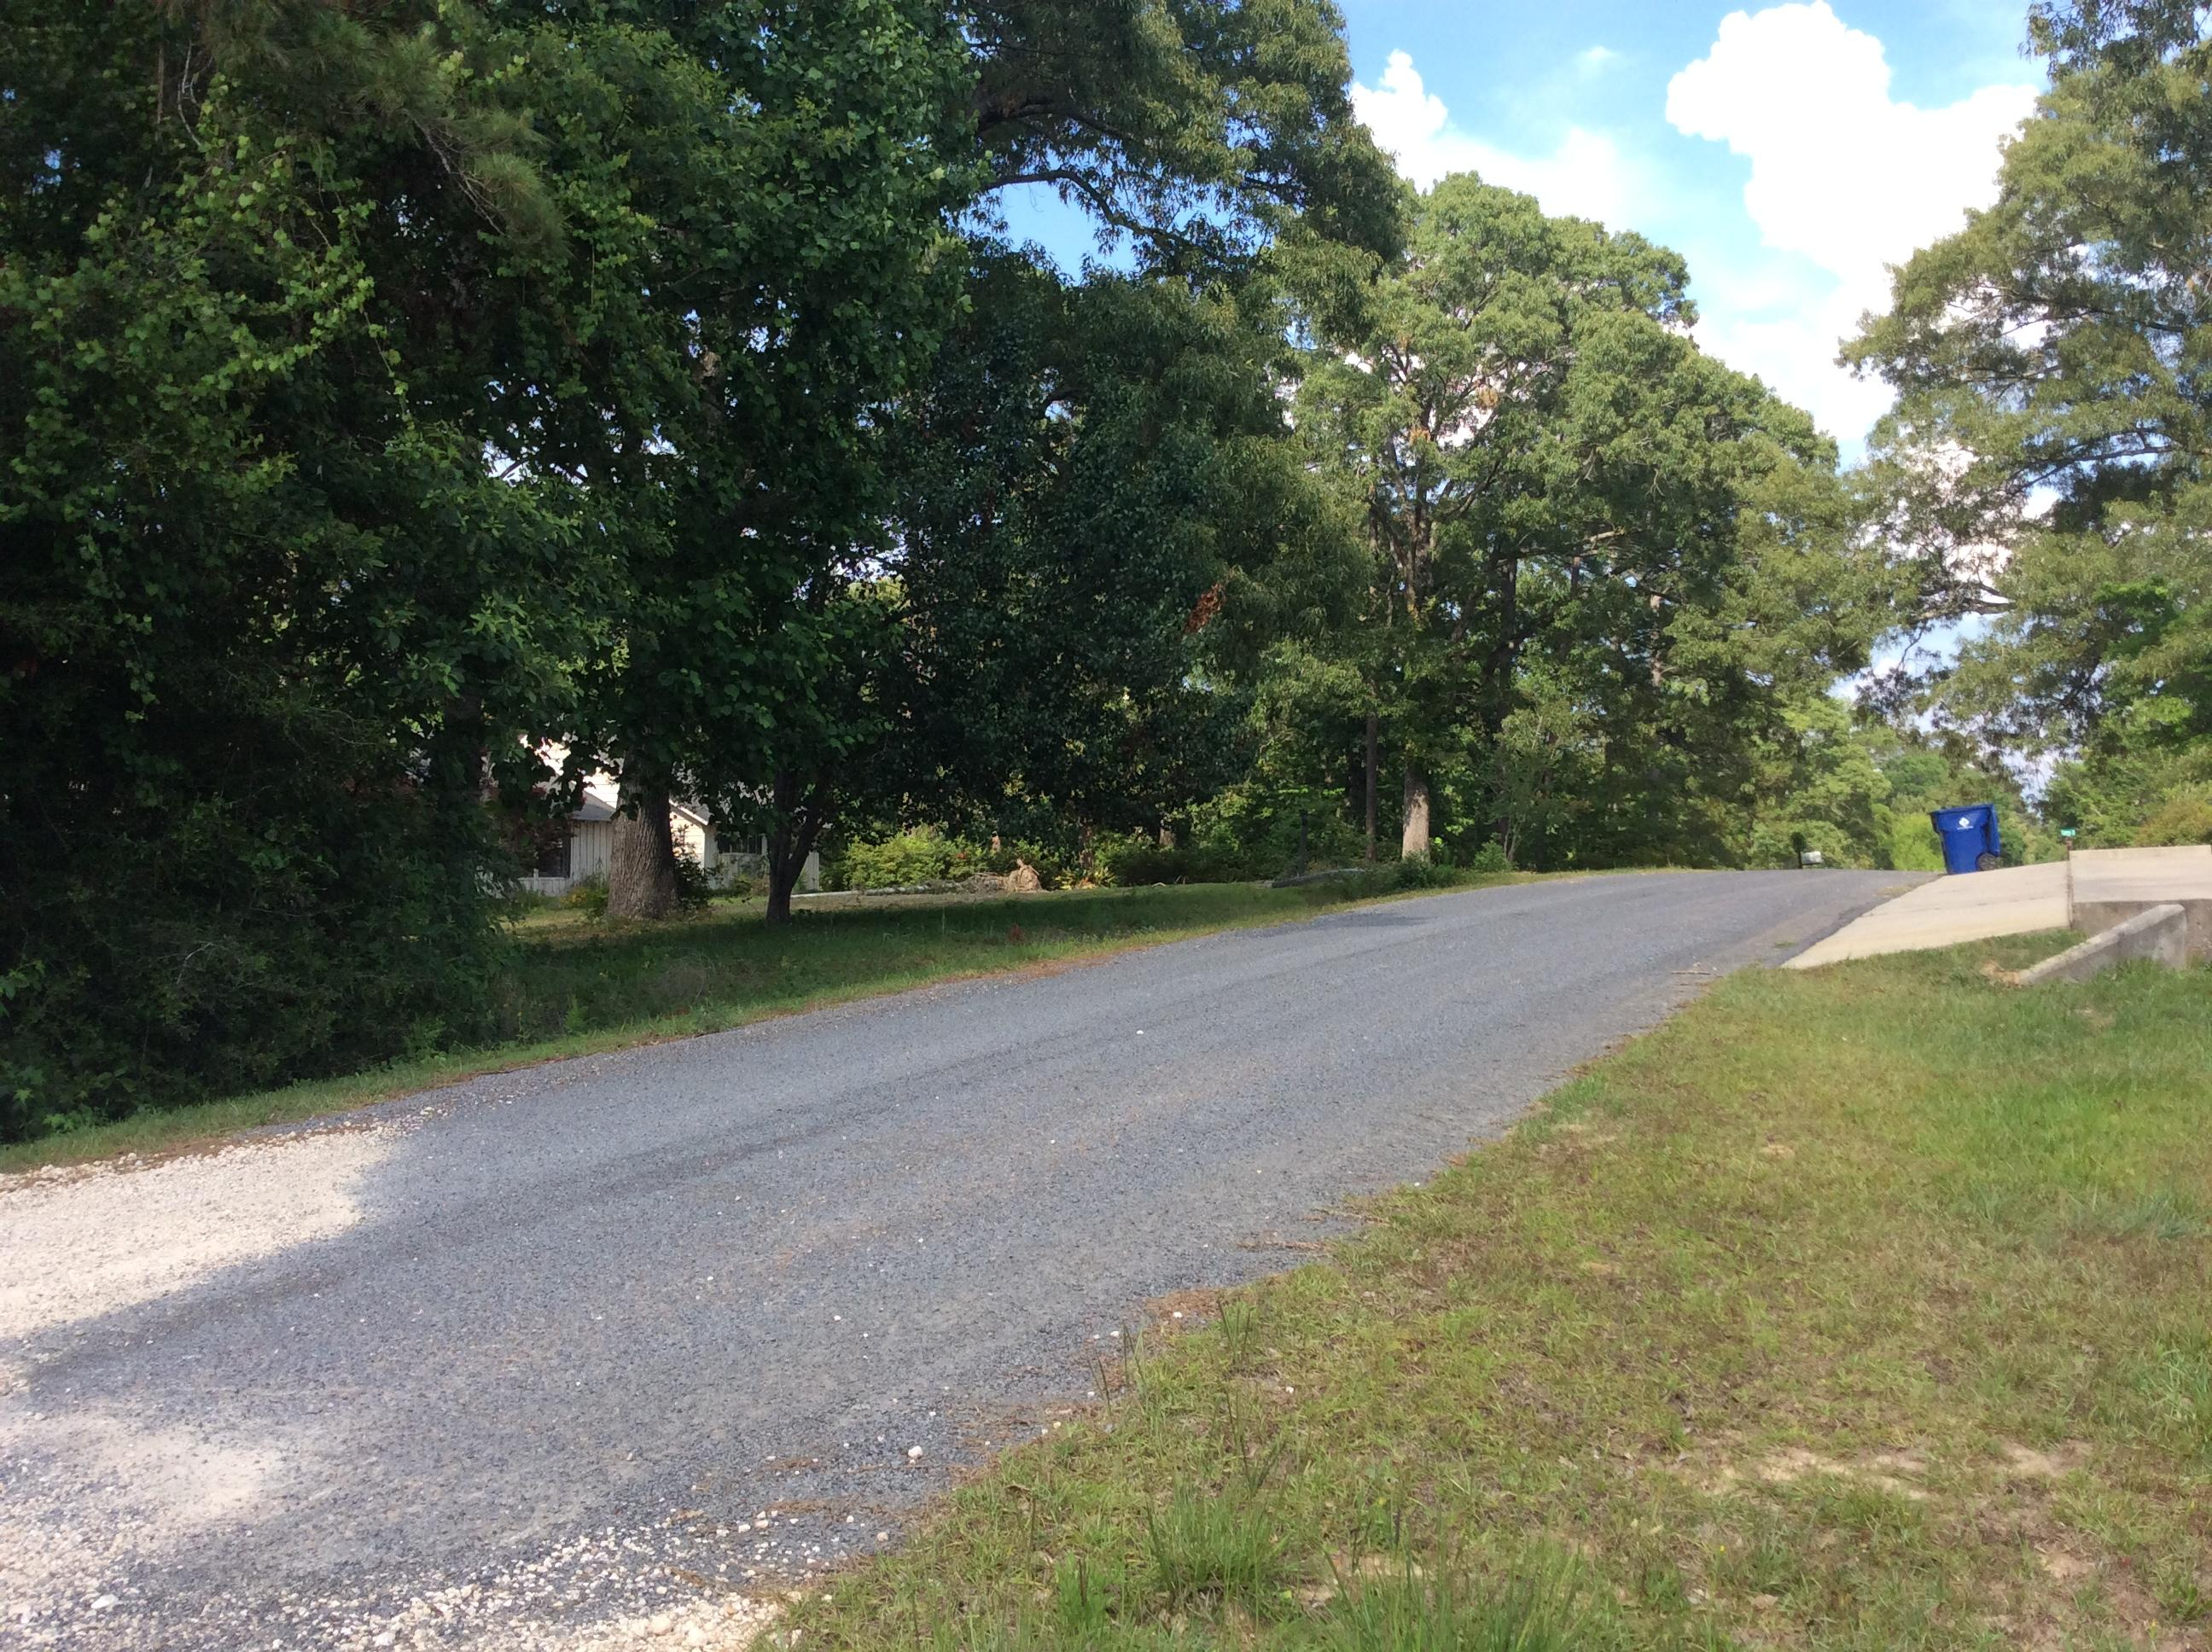 DeRidder land for sale,  Gehron St, DeRidder LA - $15,000